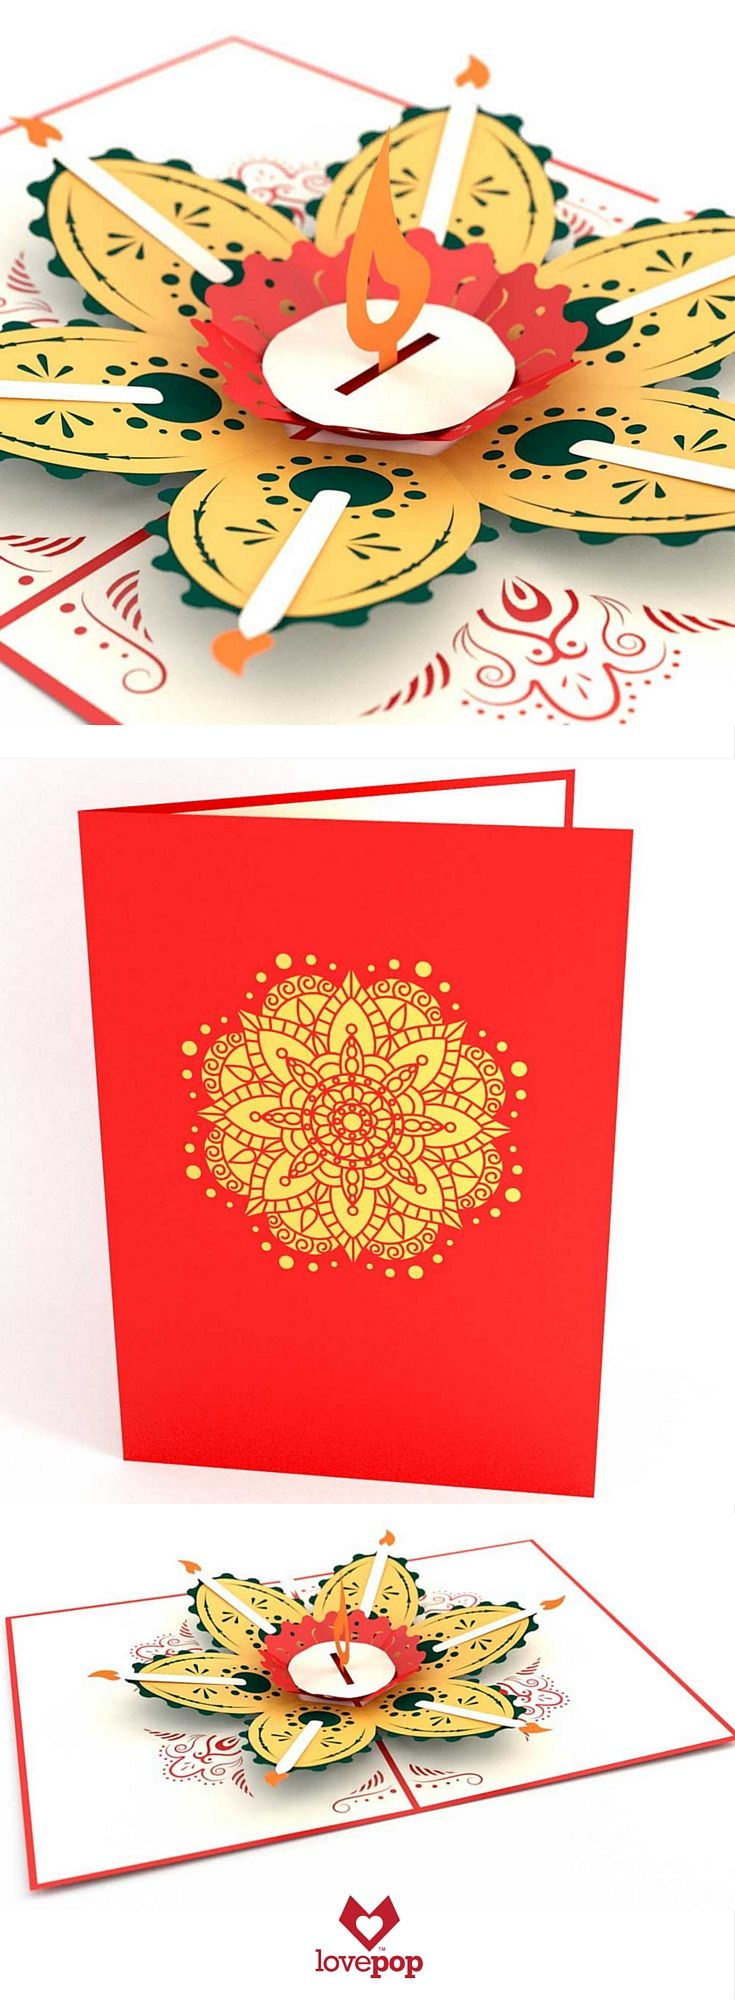 Celebrate the festival of lights with this Diwali pop up card. Beautiful paper art to celebrate with friends and family.